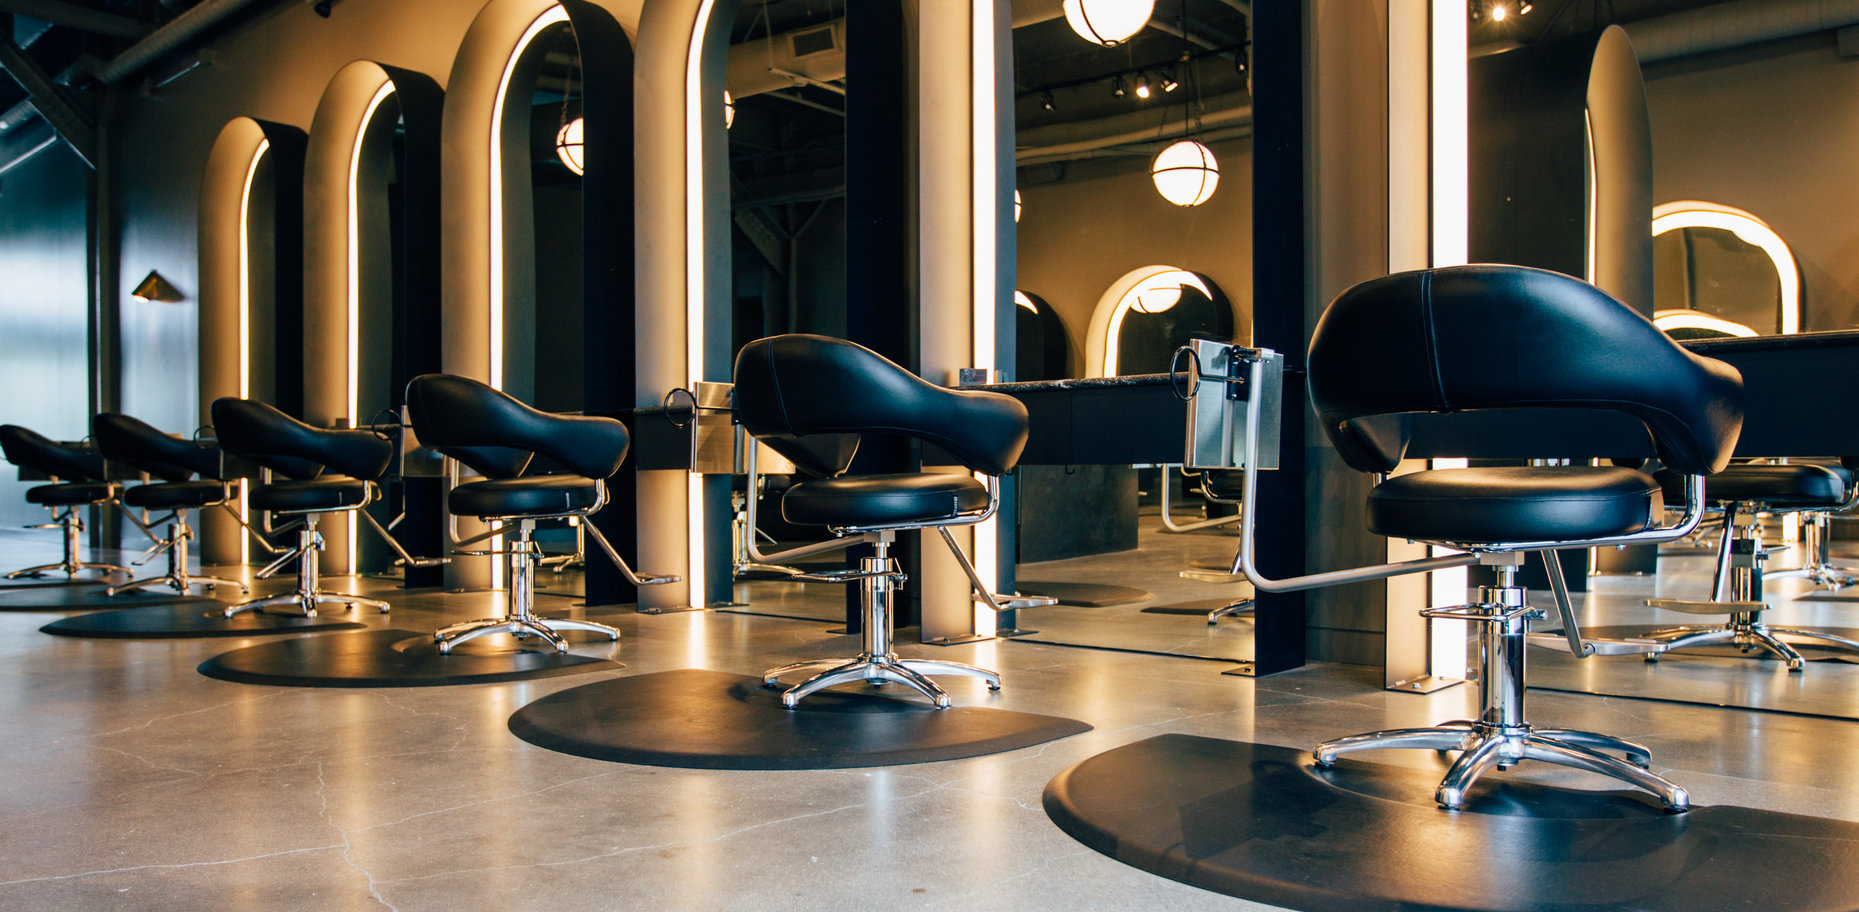 Black Hair Salon Near Me Black Hair Salon Black Hair Salons Near Me